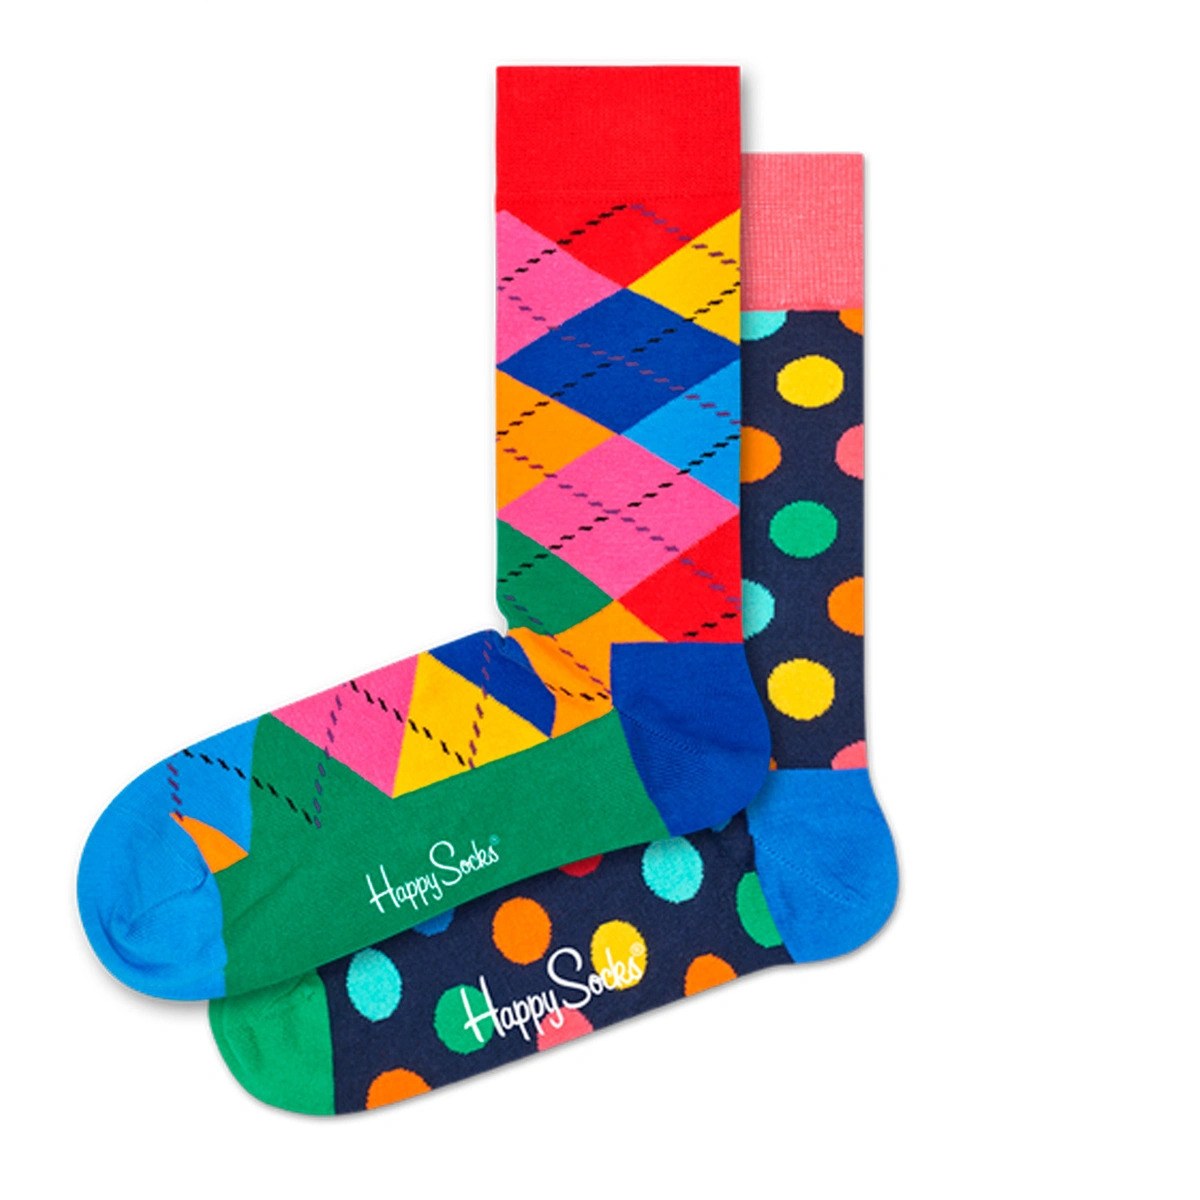 2-Pack Classic Holiday Socks Gift Set